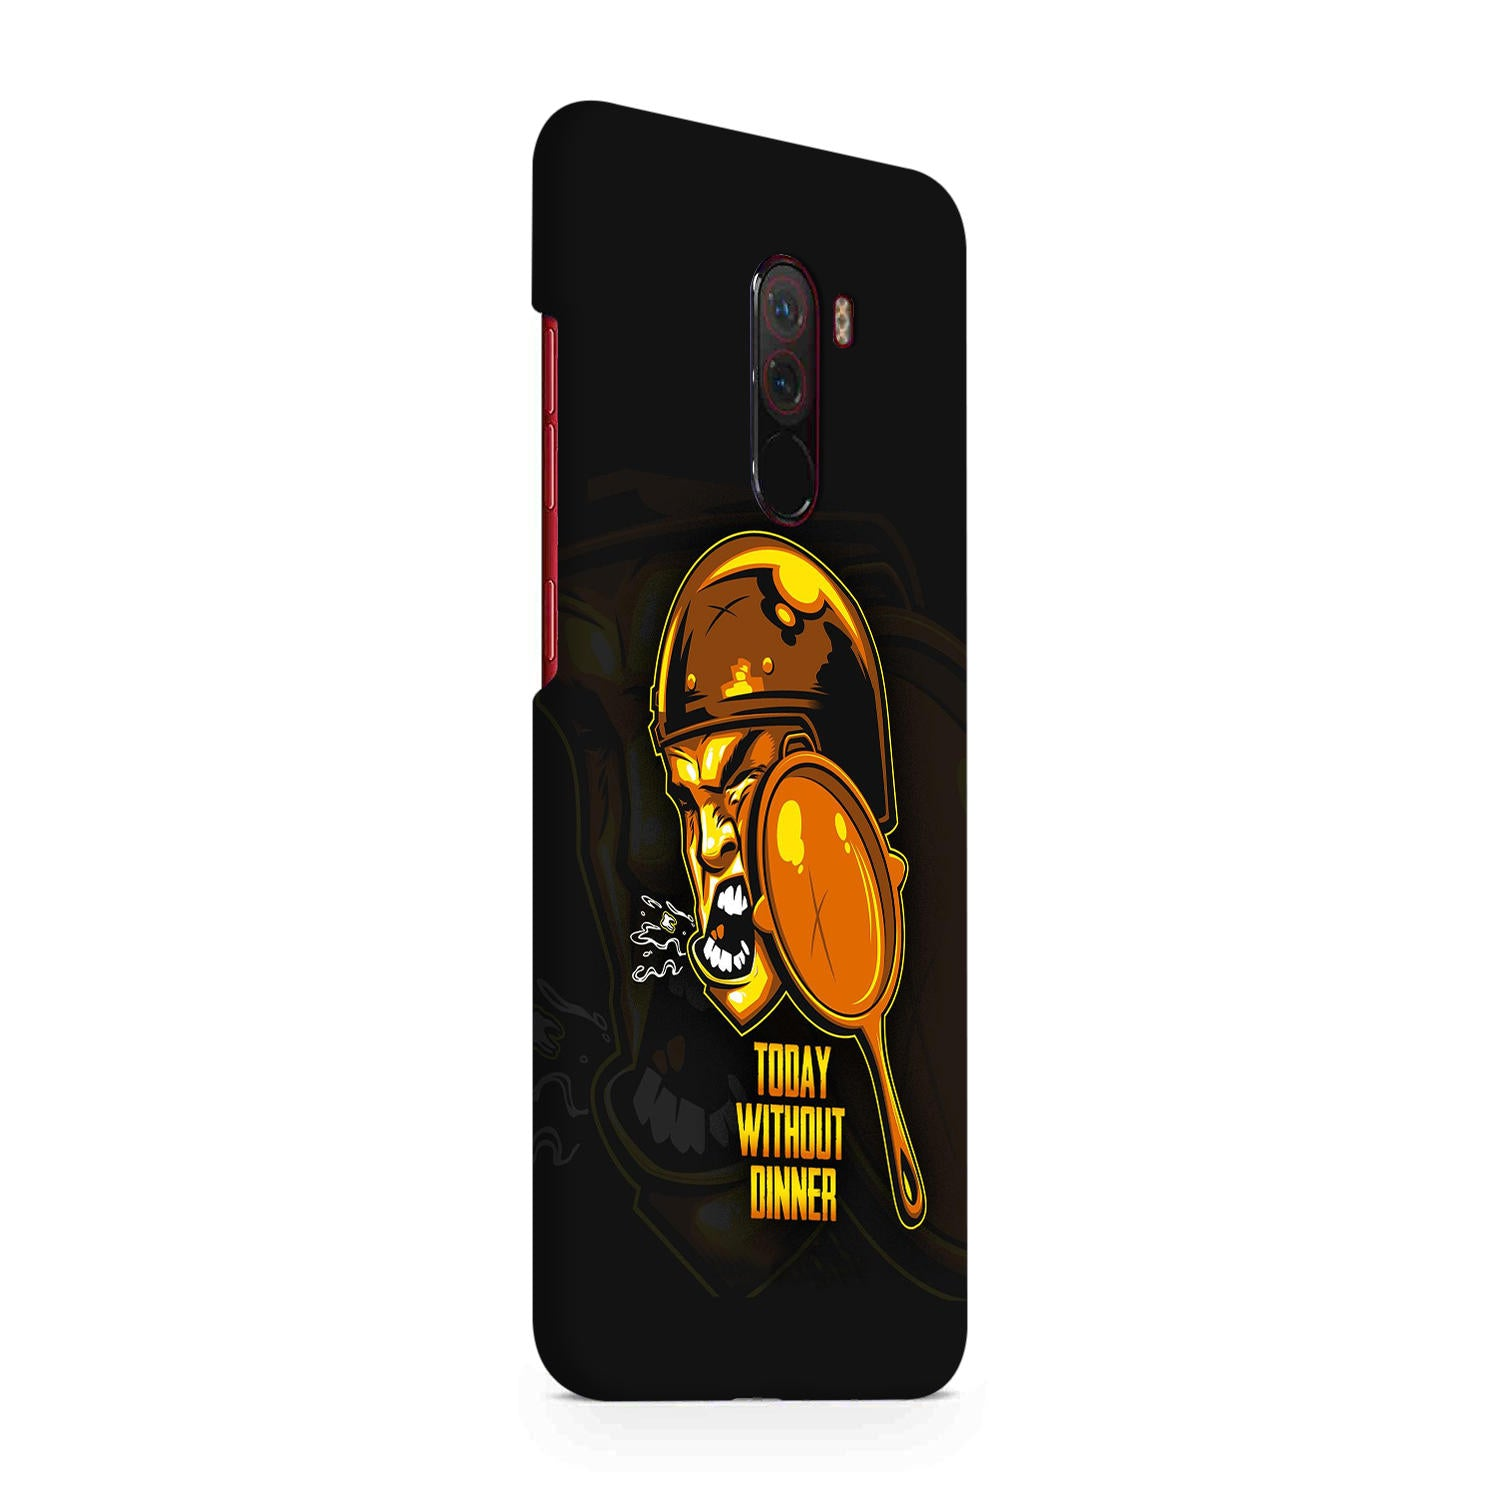 Today Without Dinner Hitting Pan Xiaomi Poco F1 Mobile Cover Case - MADANYU